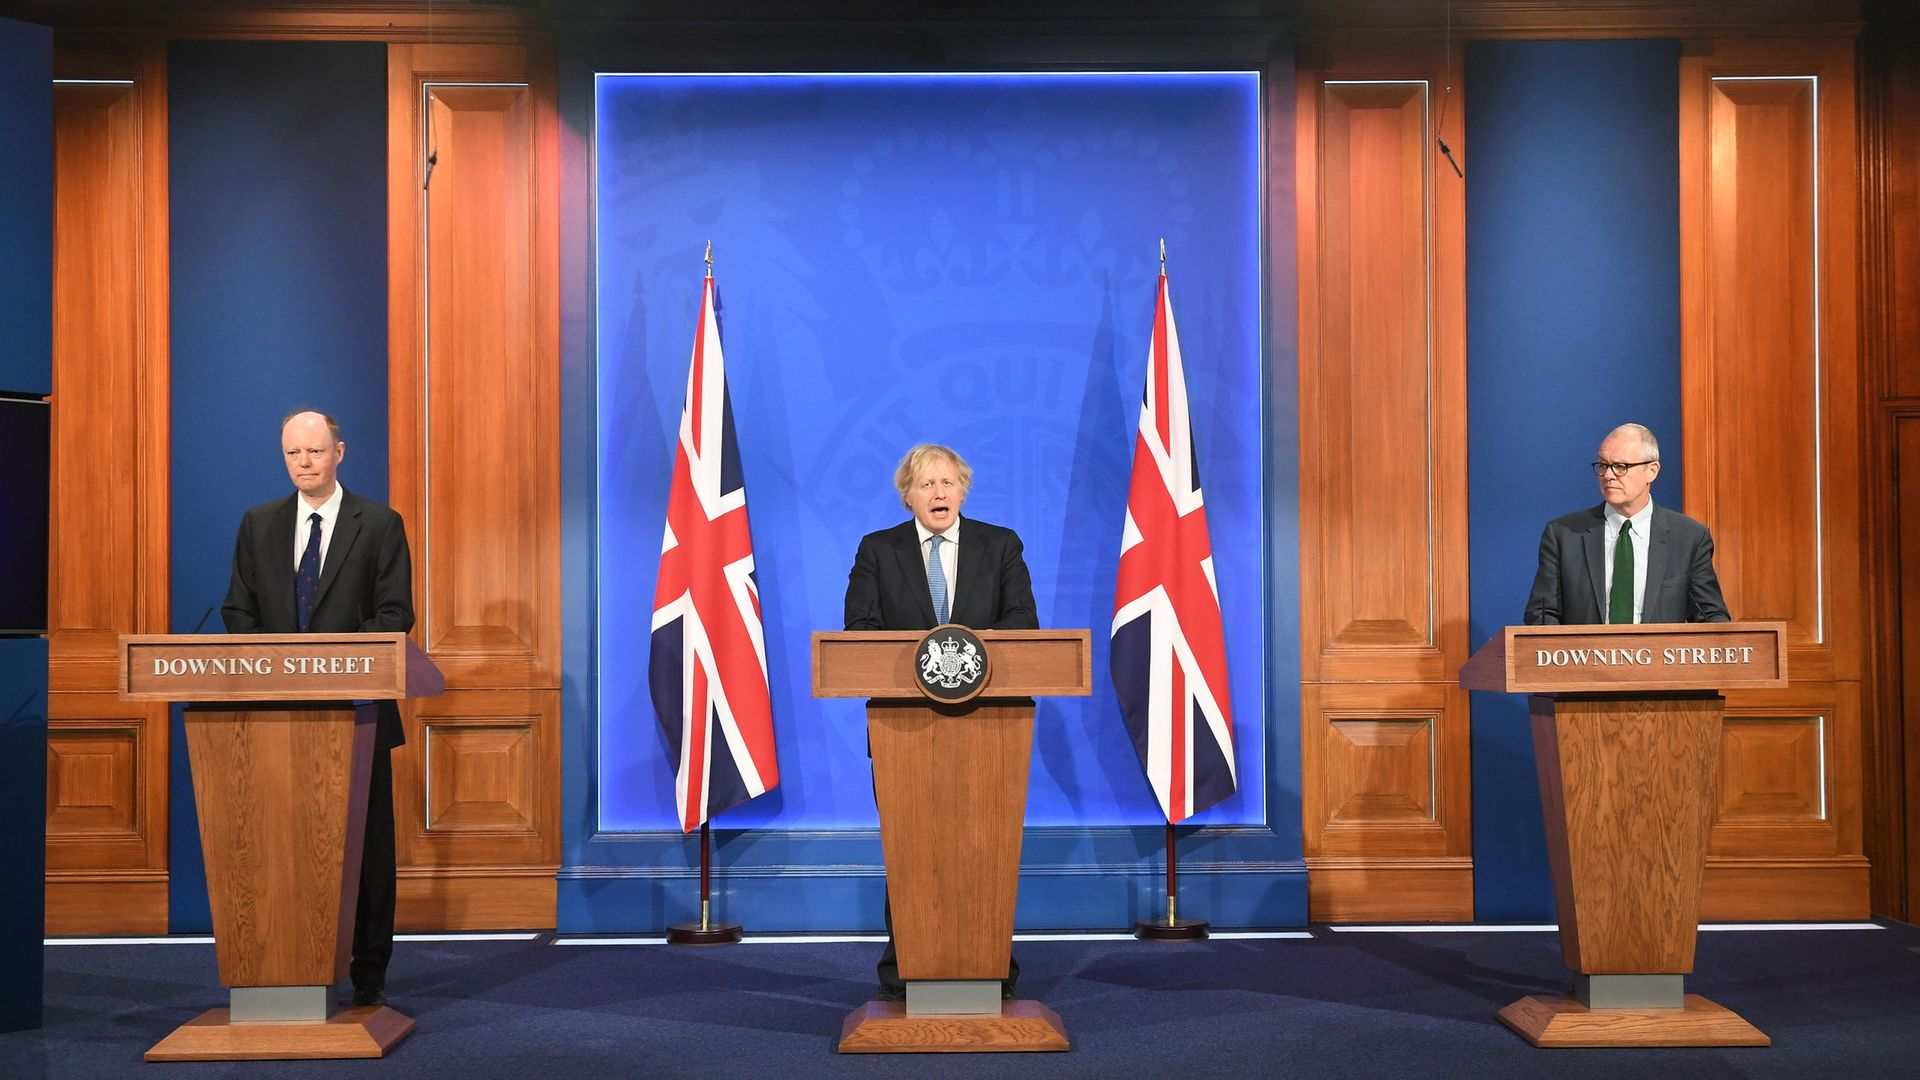 (left to right) Chief Medical Officer Professor Chris Whitty, Prime Minister Boris Johnson and Chief scientific adviser Sir Patrick Vallance, during a media briefing in Downing Street - Credit: PA